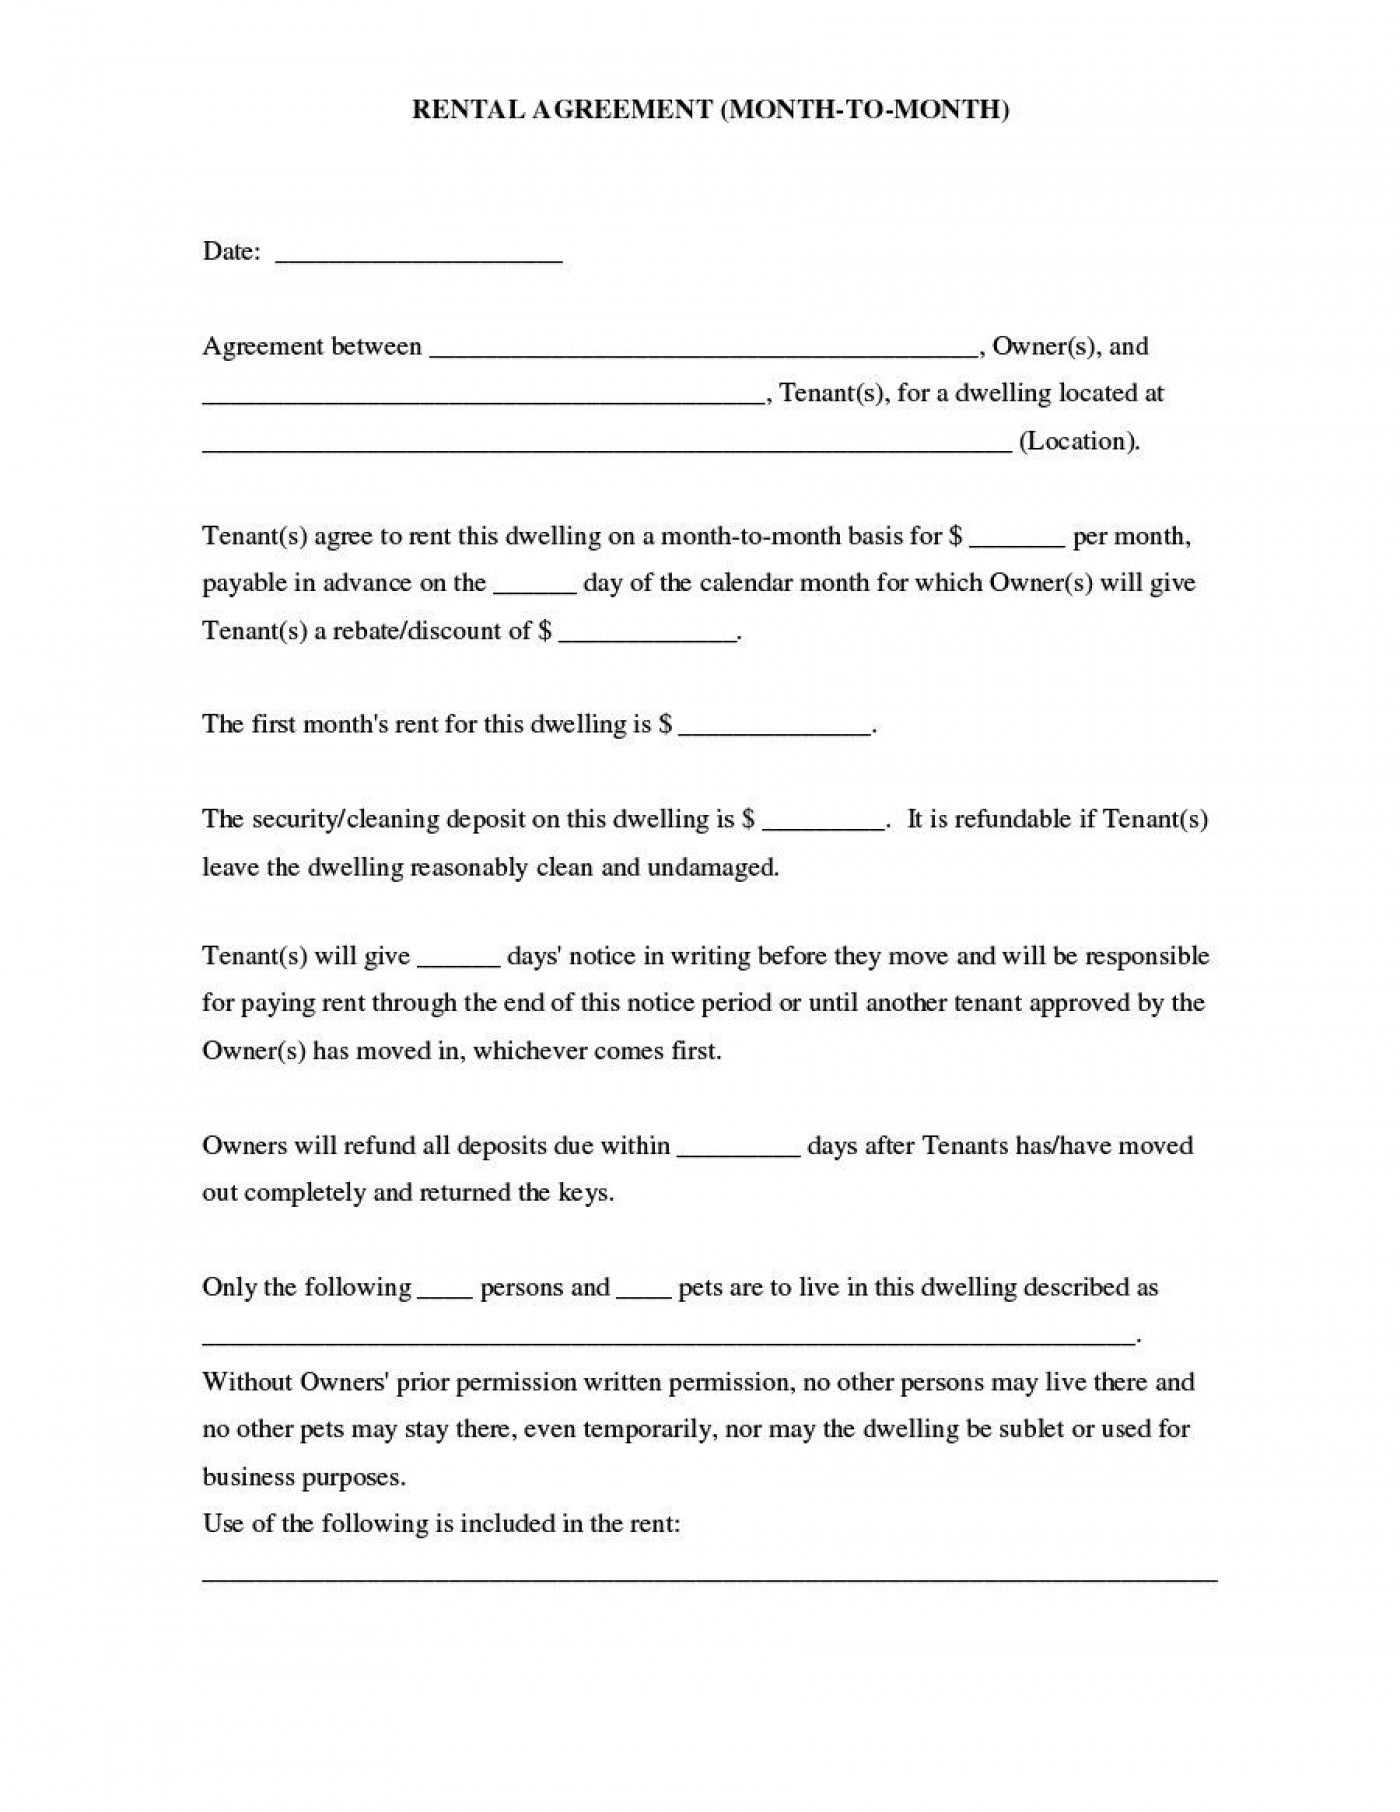 007 Outstanding Housing Rental Agreement Template Free High Resolution 1400